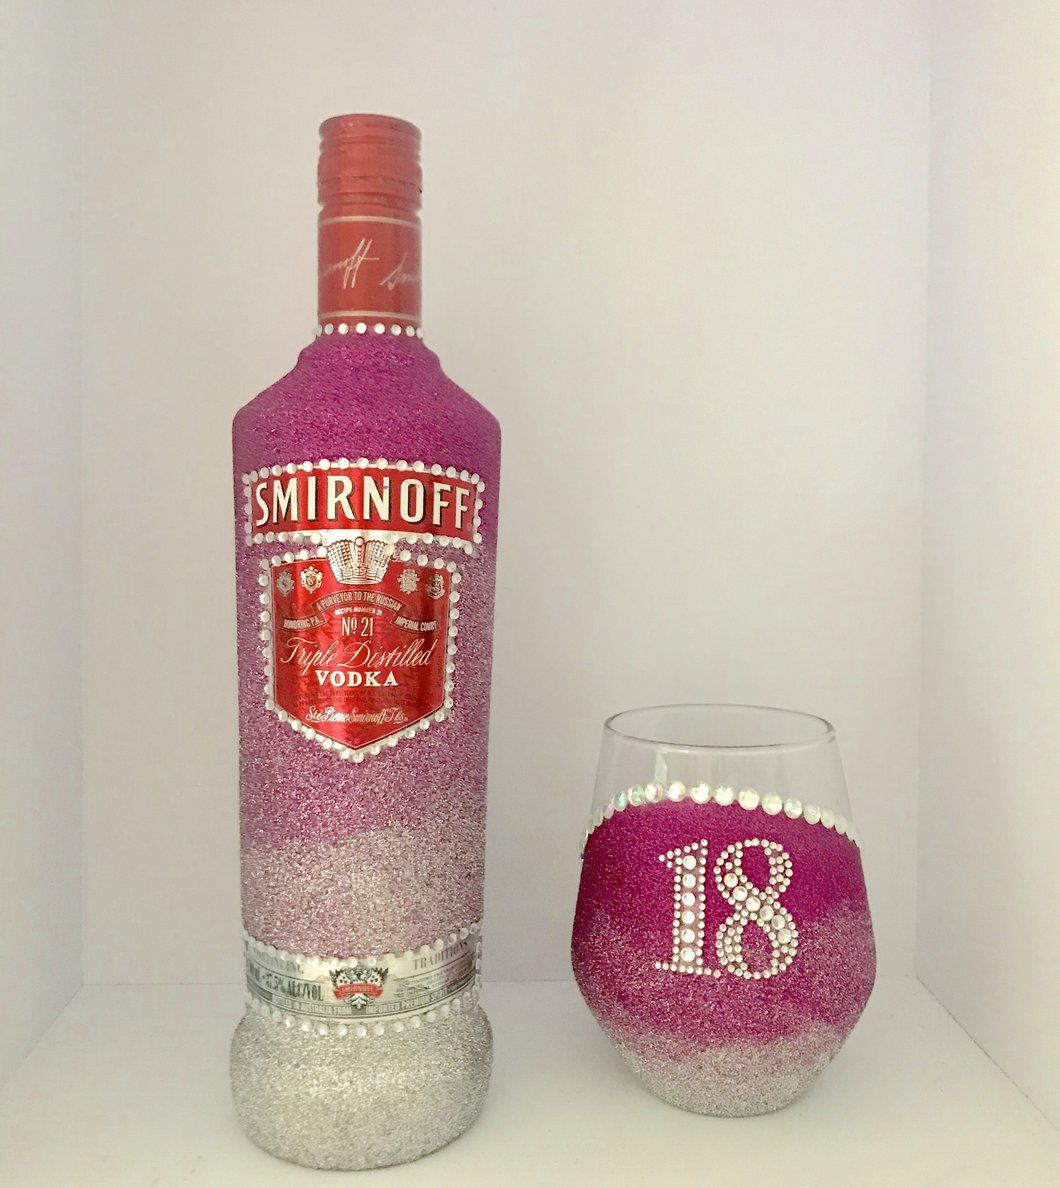 Smirnoff with Stemless glass includes a bling initial or